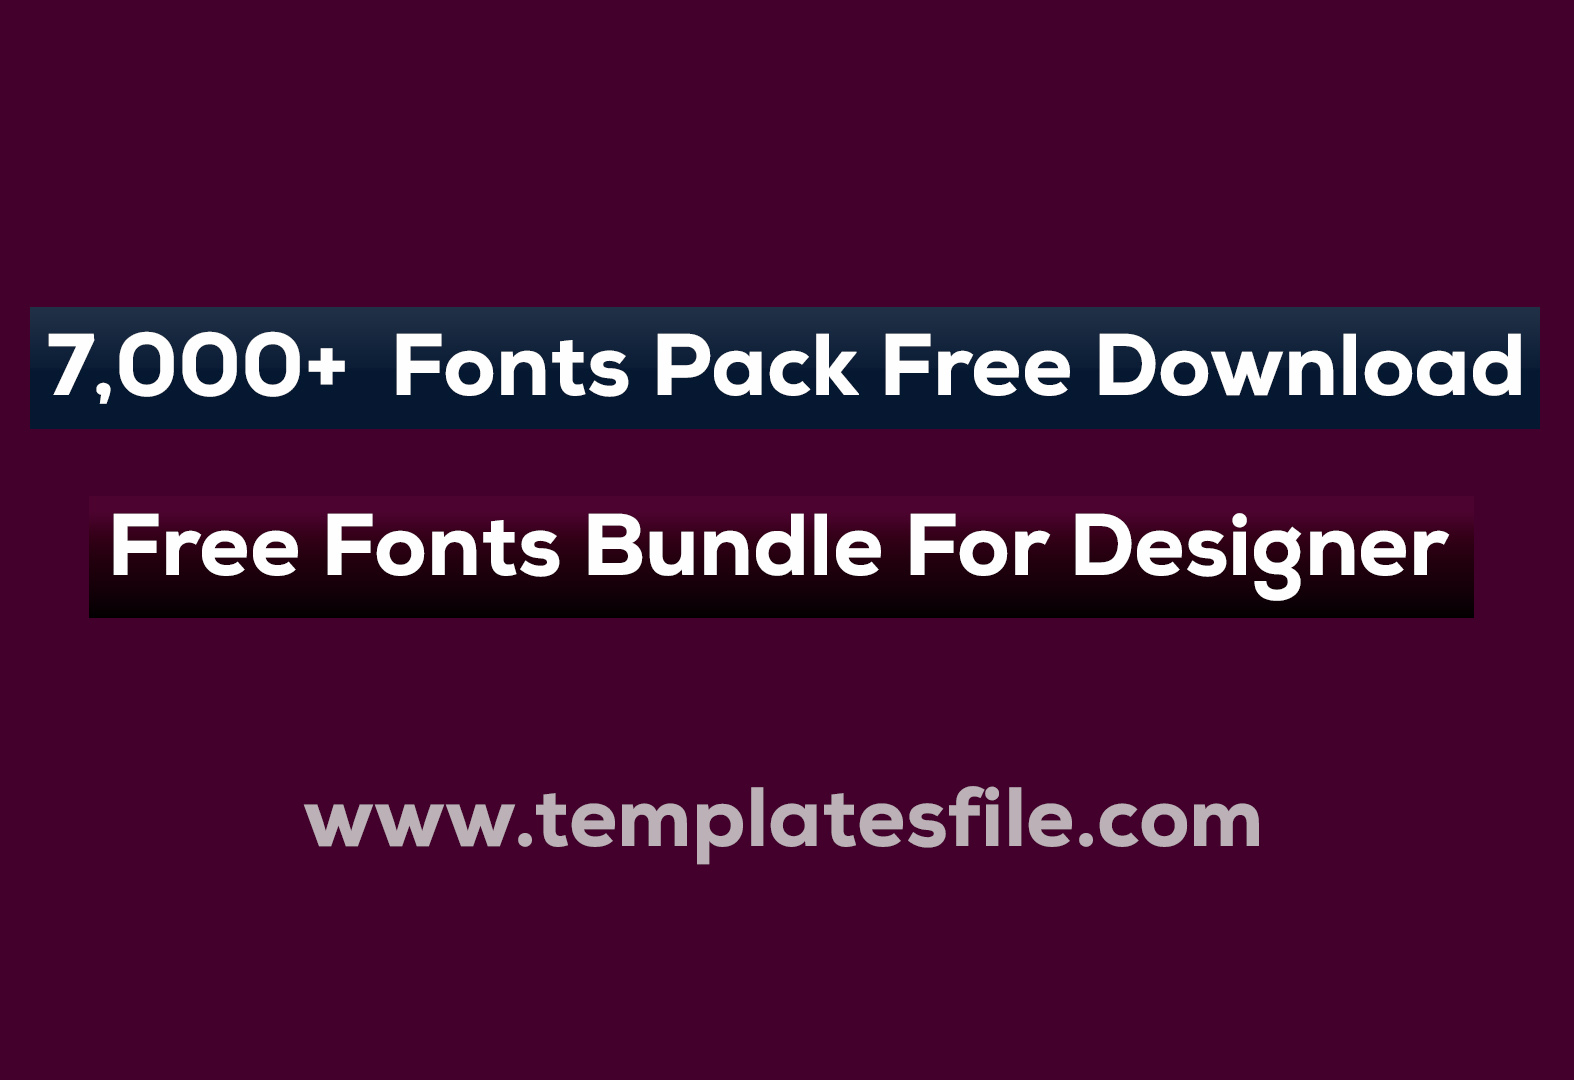 7,000+ Fonts Pack Free Download | Free Fonts Bundle For Designer